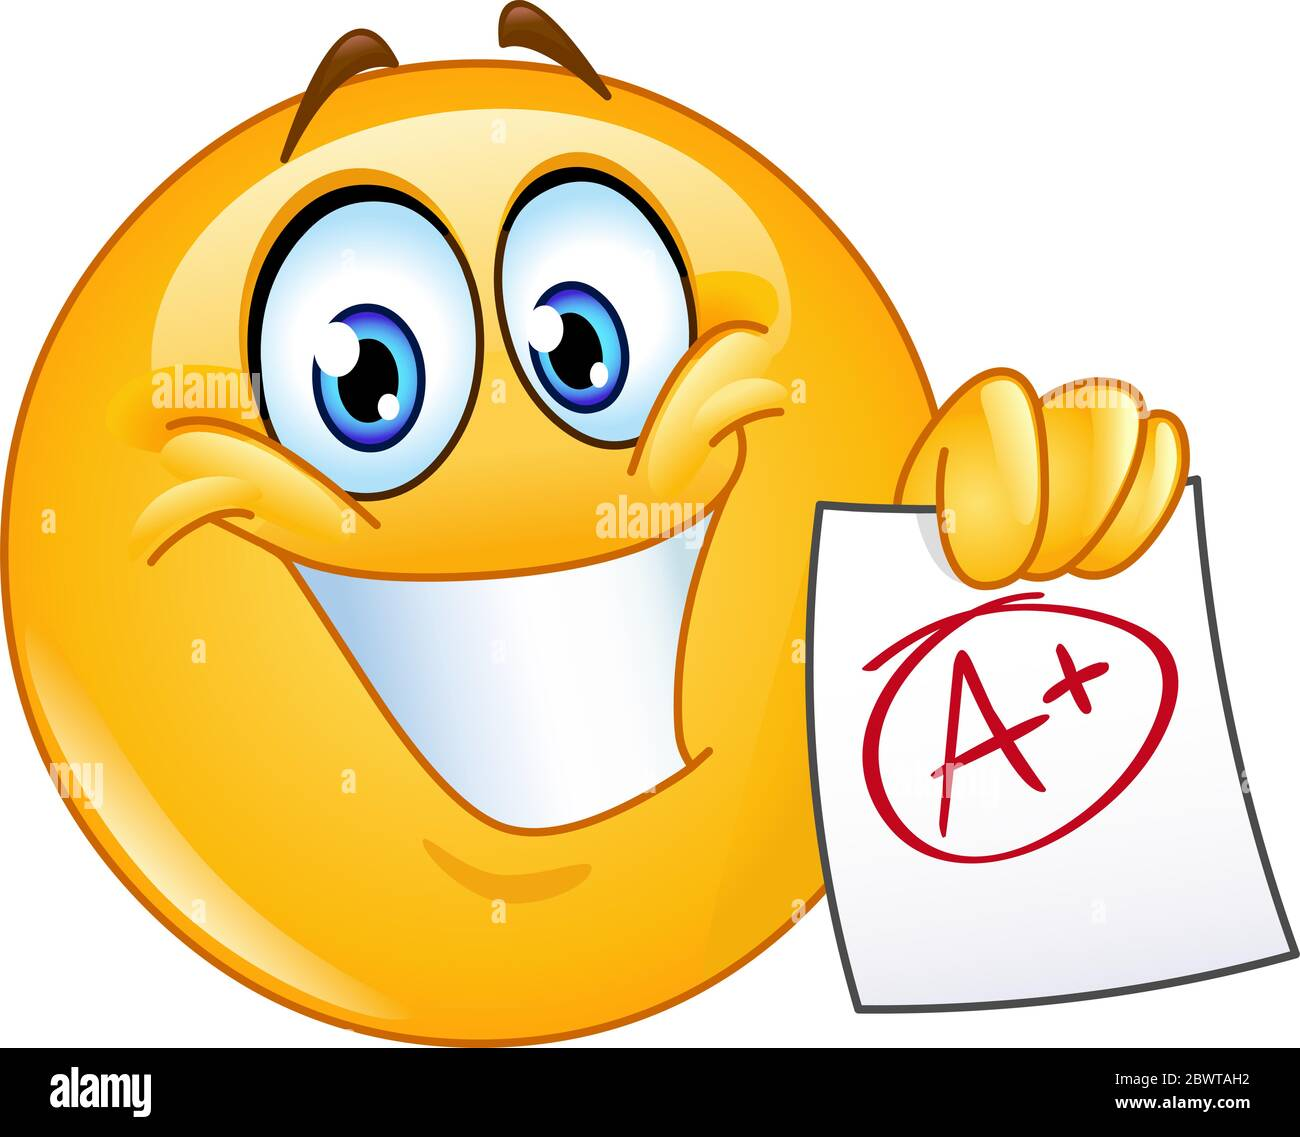 Happy emoticon showing a paper with perfect grade a plus Stock Vector Image & Art - Alamy